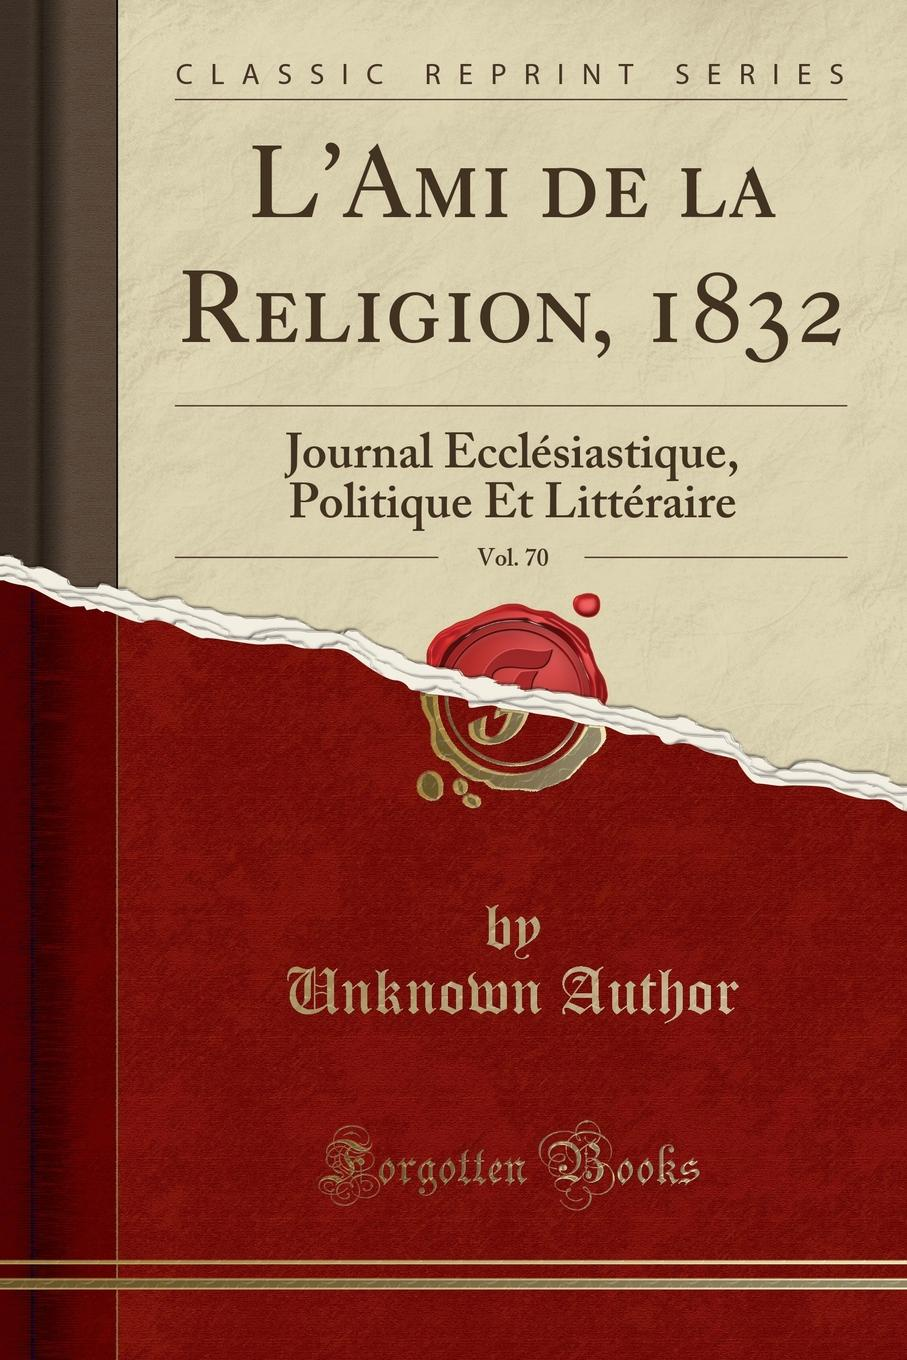 Unknown Author L.Ami de la Religion, 1832, Vol. 70. Journal Ecclesiastique, Politique Et Litteraire (Classic Reprint) andré blum l estampe satirique en france pendant les guerres de religion essai sur les origines de la caricature politique classic reprint